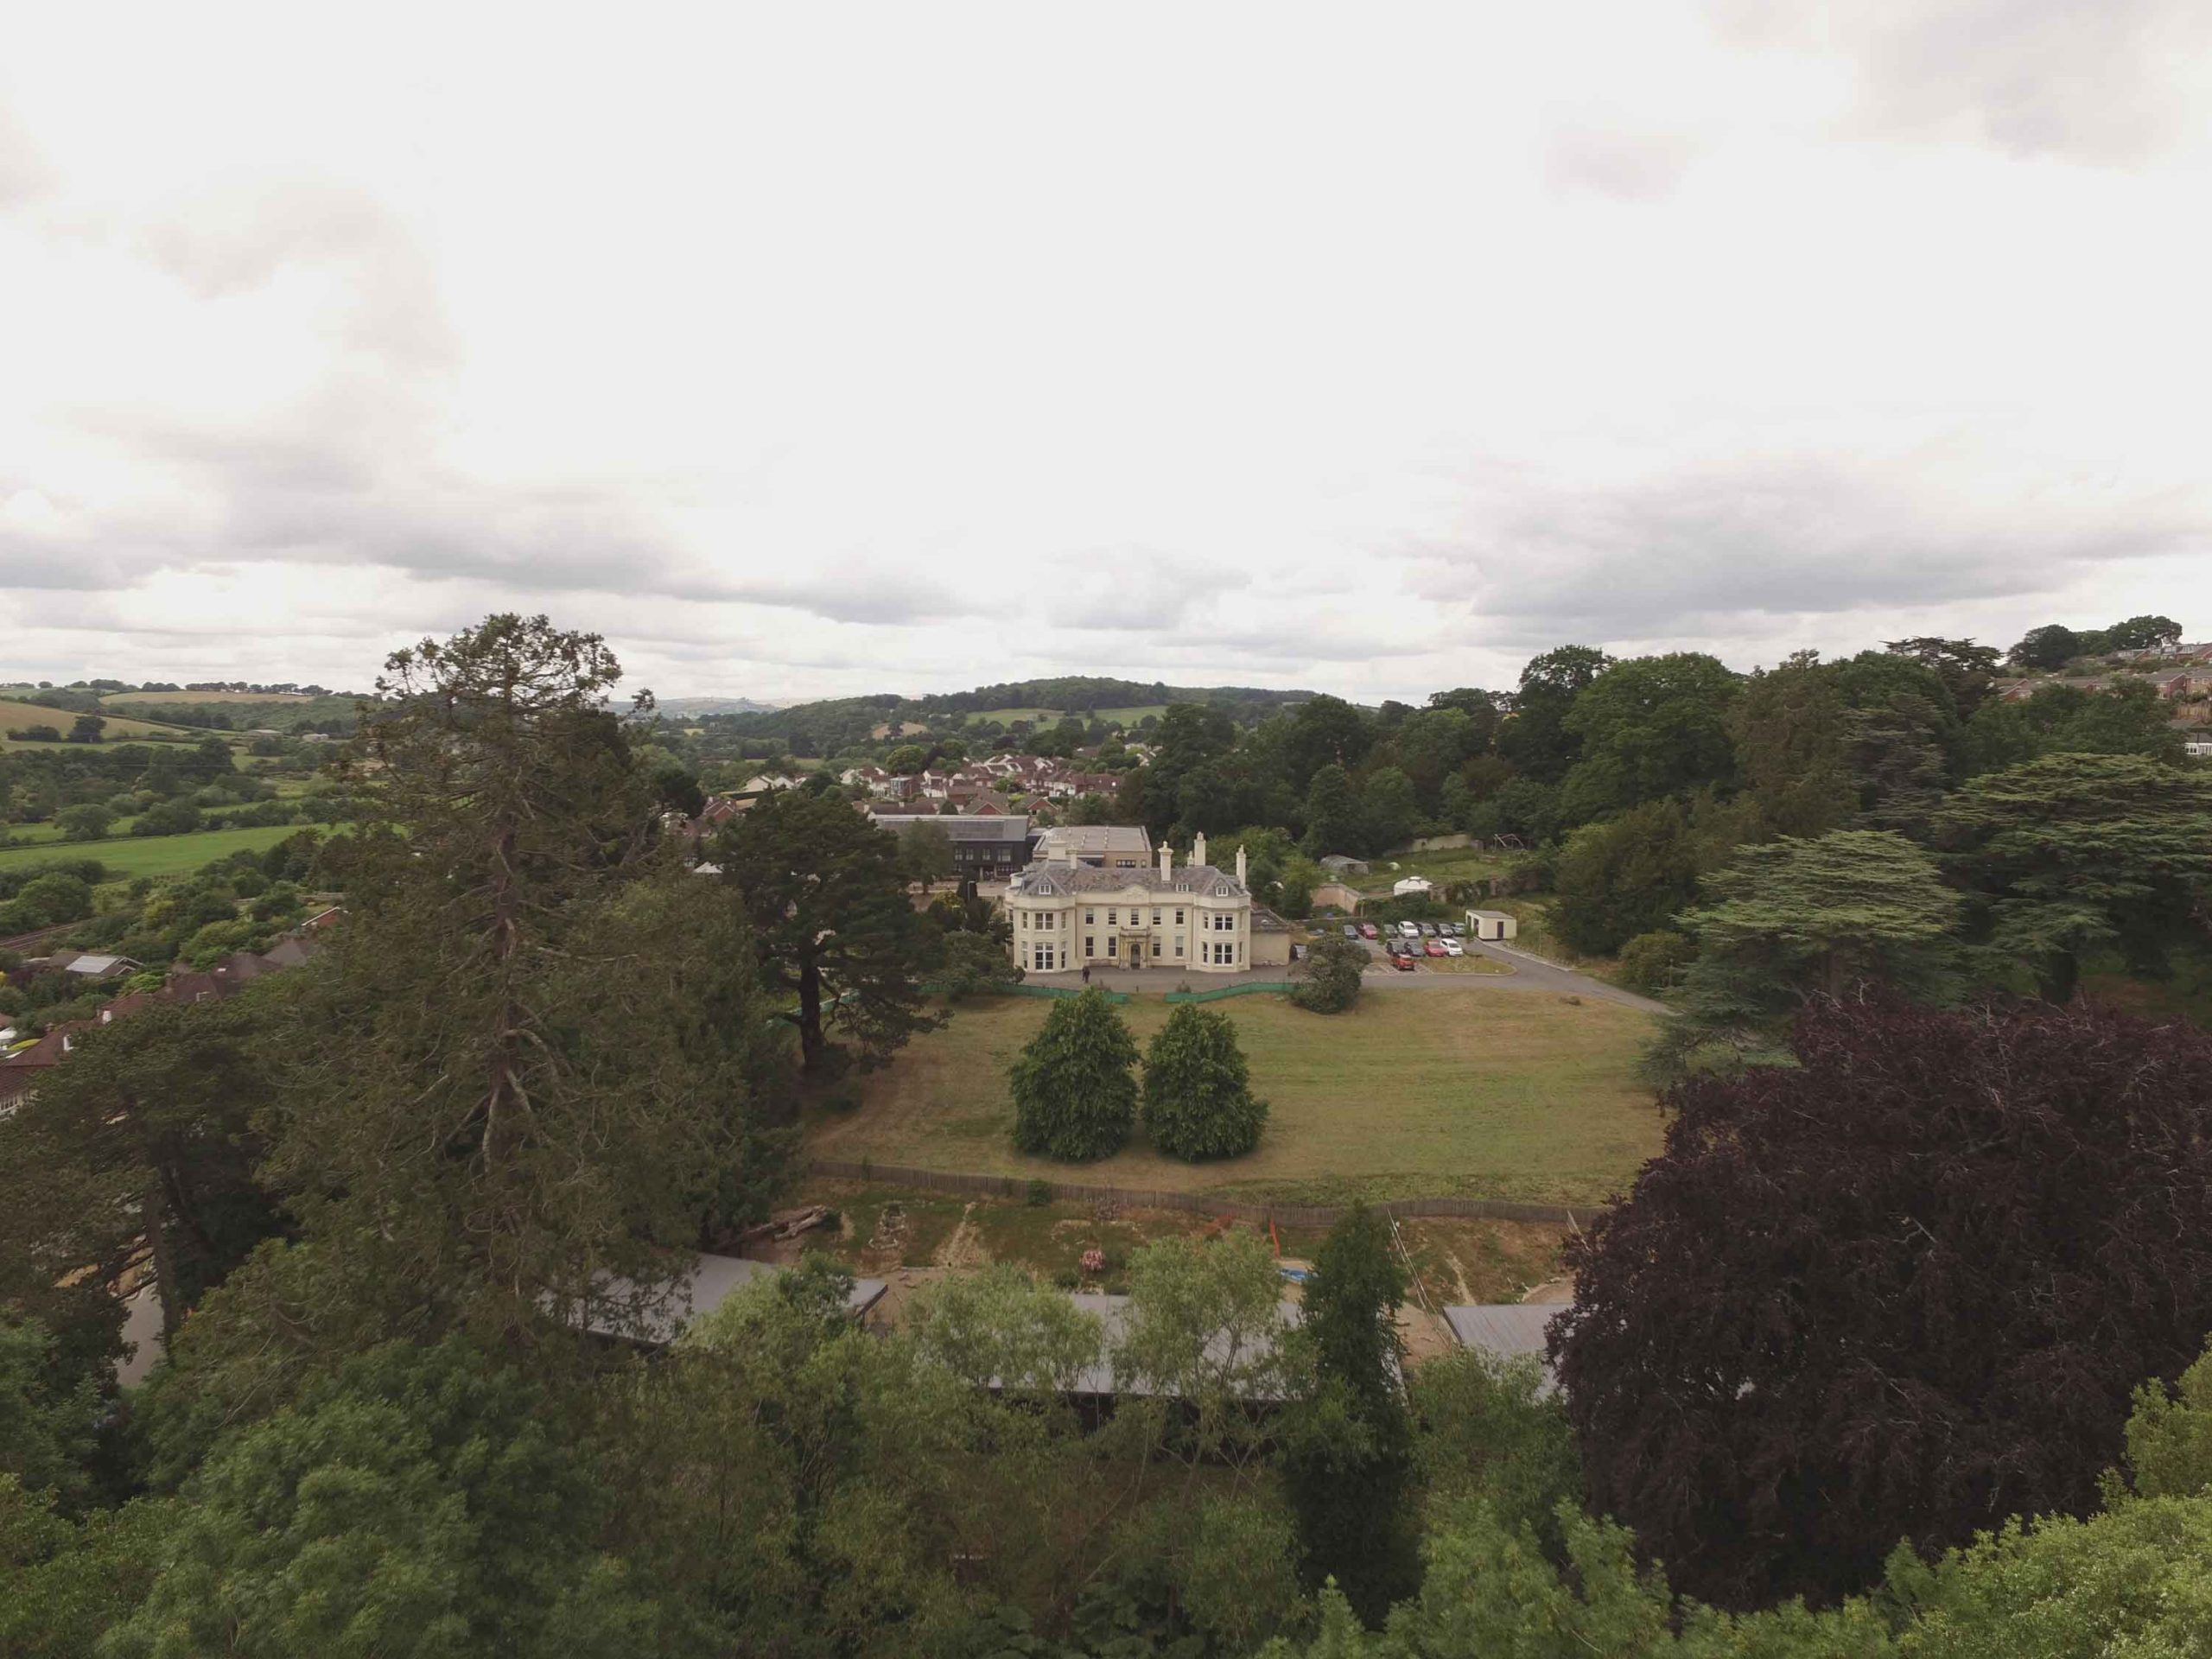 Arial photo of old double fronted building set in large grounds with grass and many trees - distant views of countryside